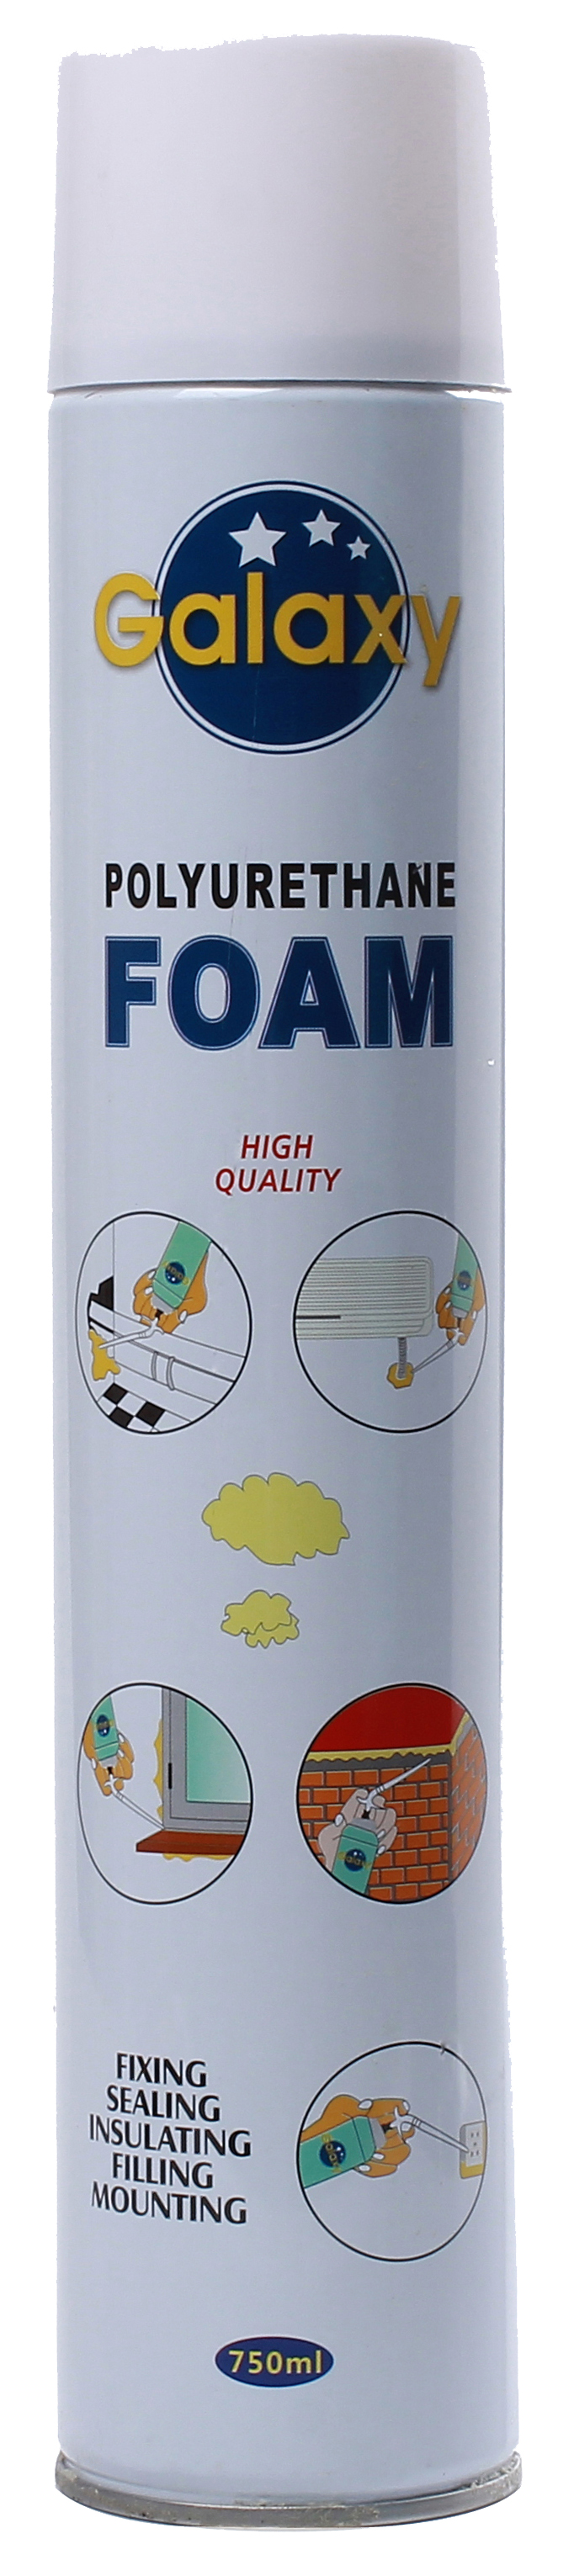 Polyurethene Foam 750Ml Image